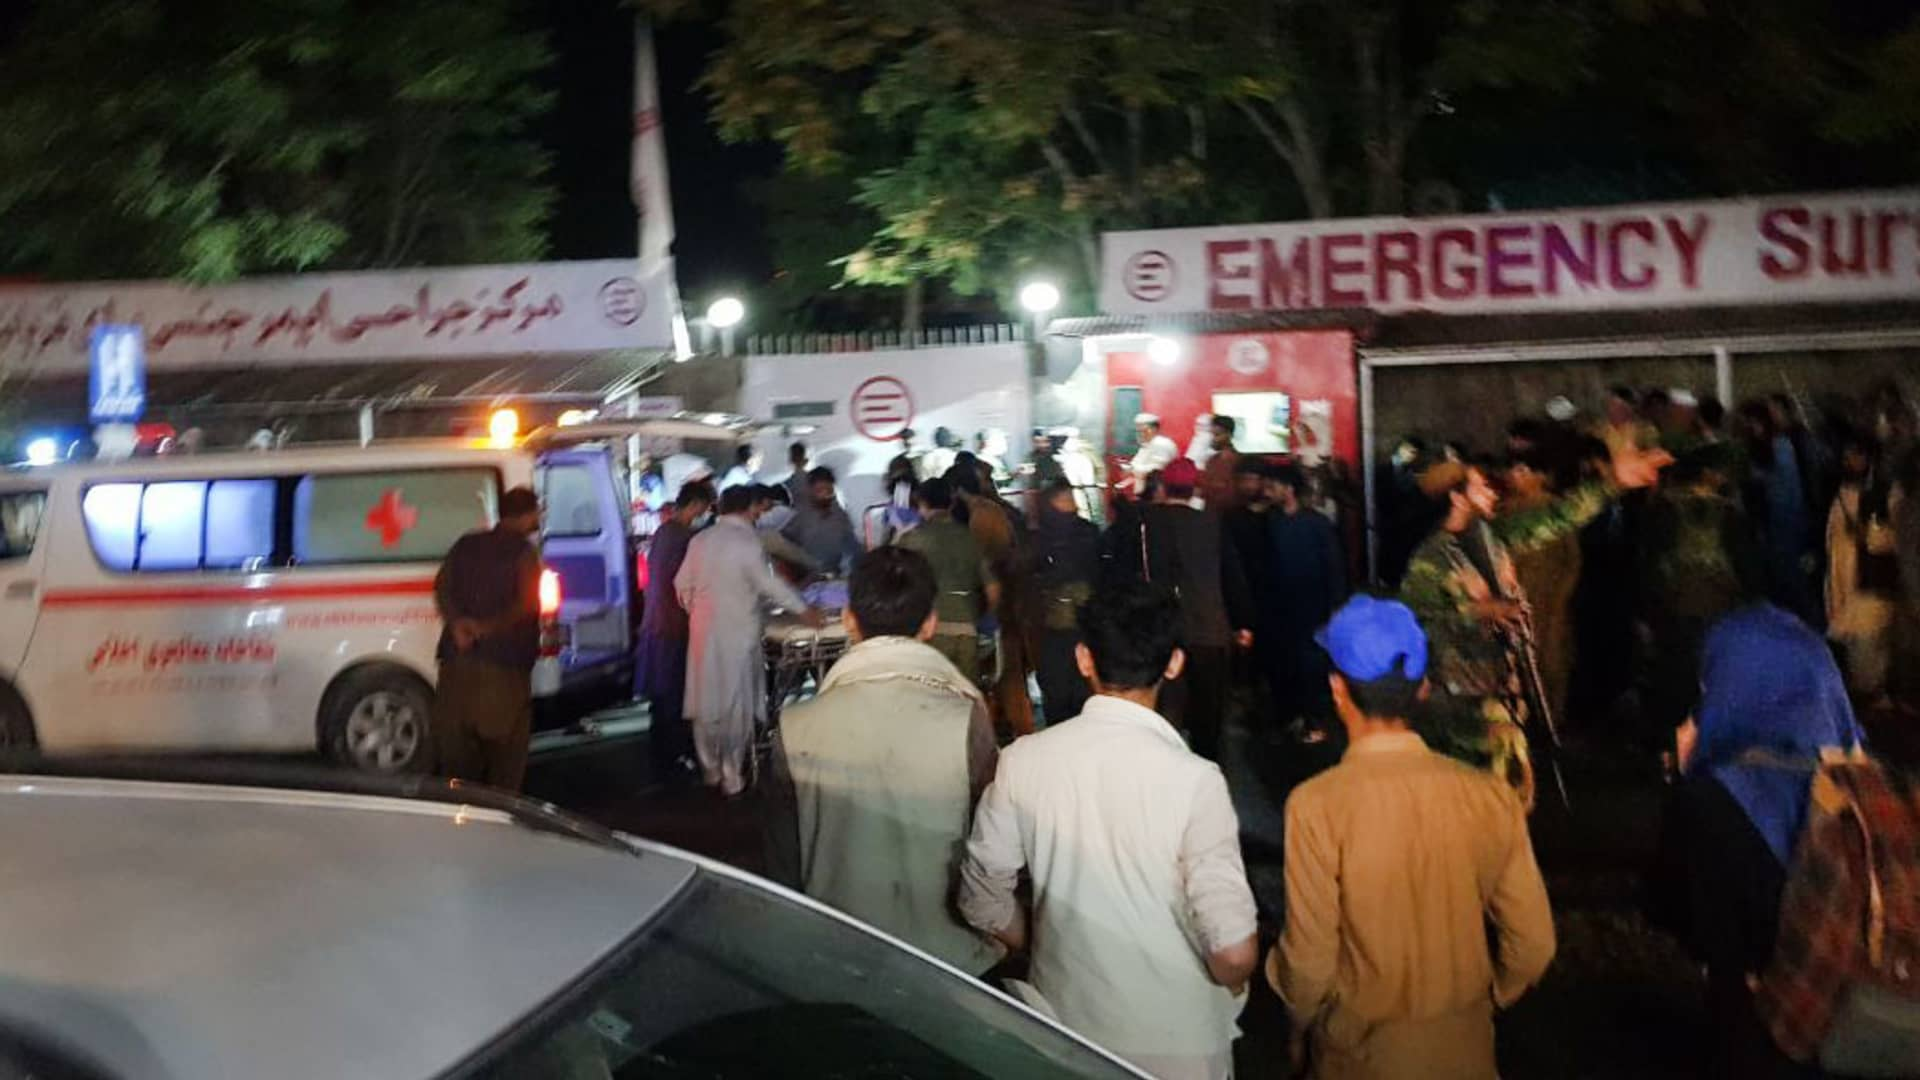 Injured people being carried to a hospital as unspecified number of casualties reported after two explosions outside Hamid Karzai International Airport in Kabul, Afghanistan on August 26, 2021.